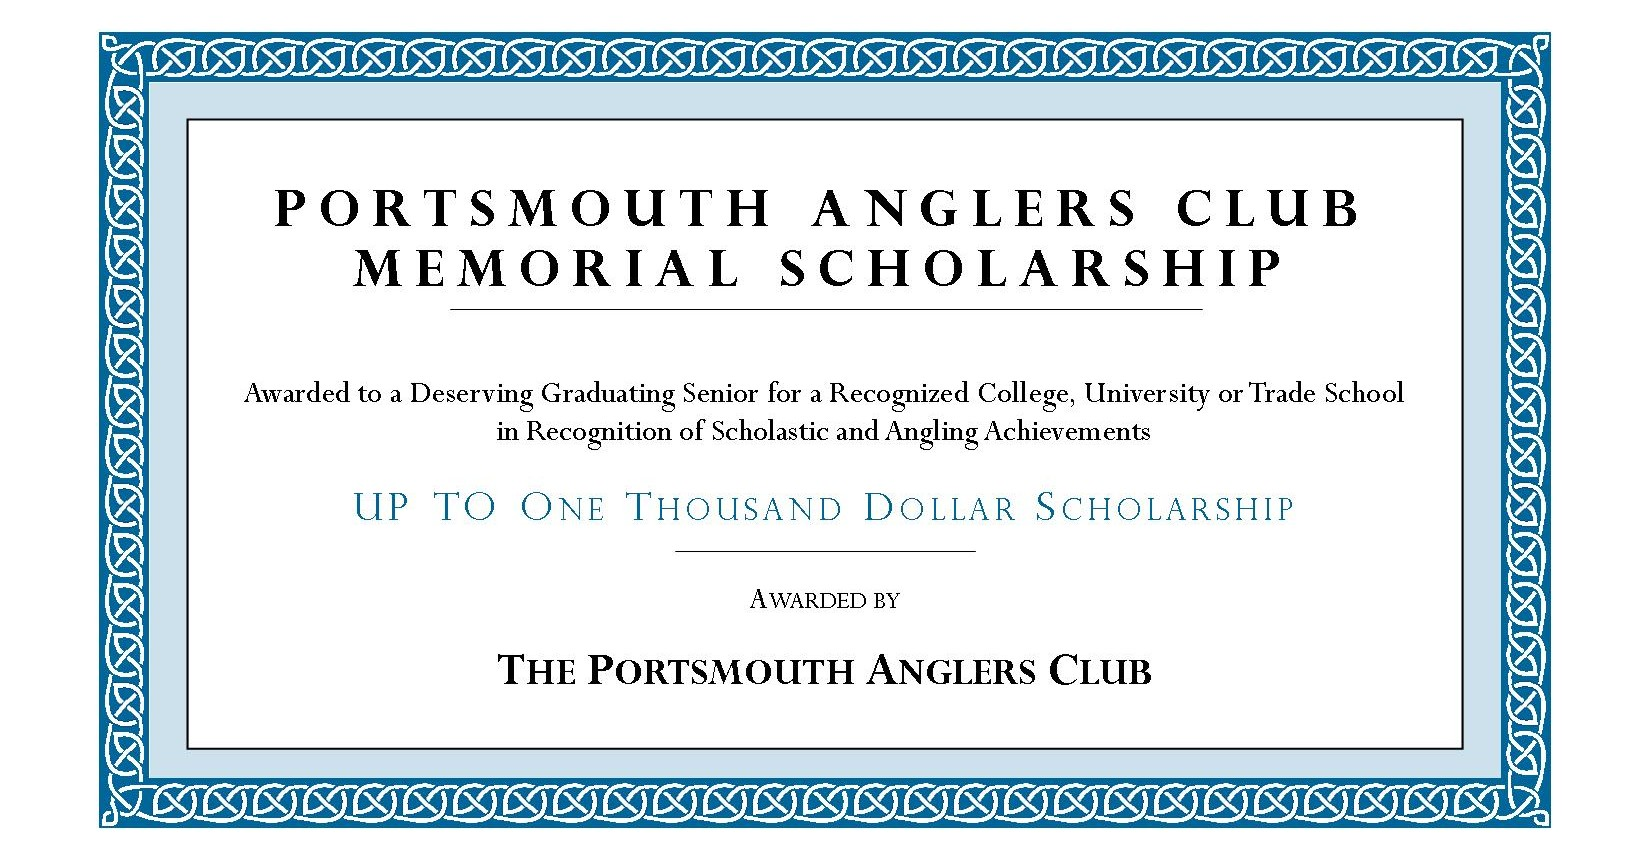 Portsmouth Anglers Club